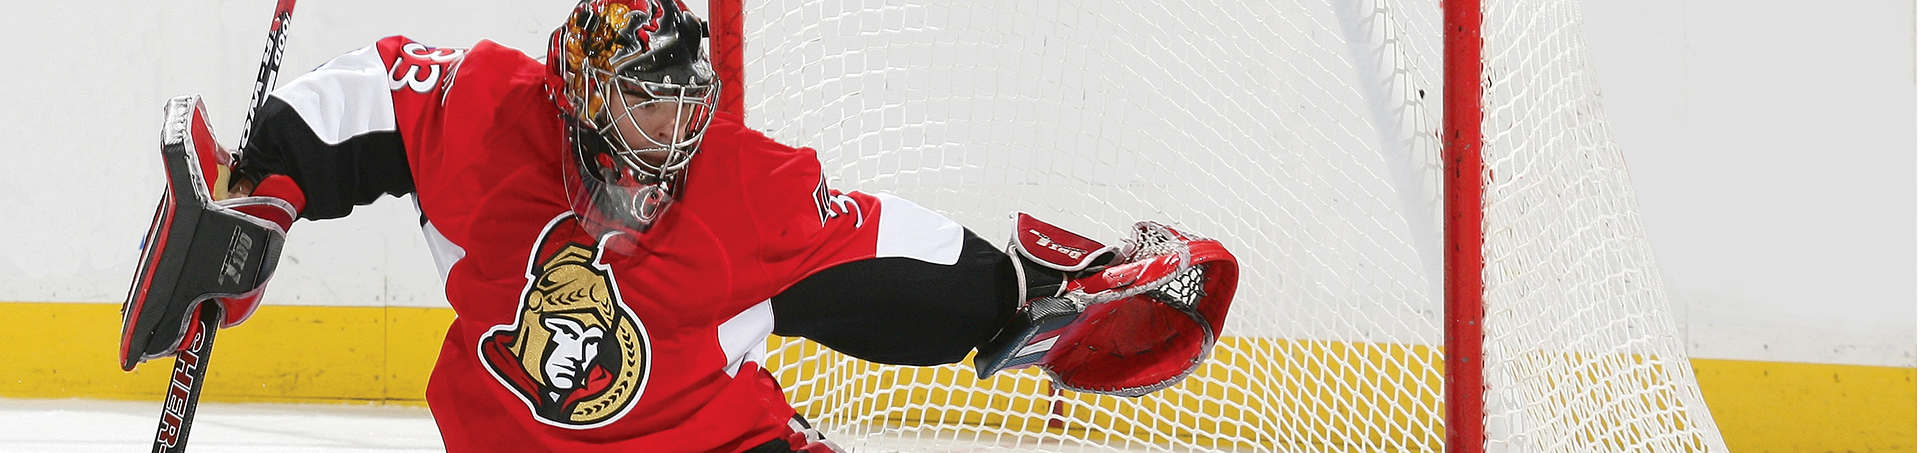 Image of the goalie for the Ottawa Senators. The Ottawa Senators Hockey Club is one of our clients that we have provided consumer marketing services for.